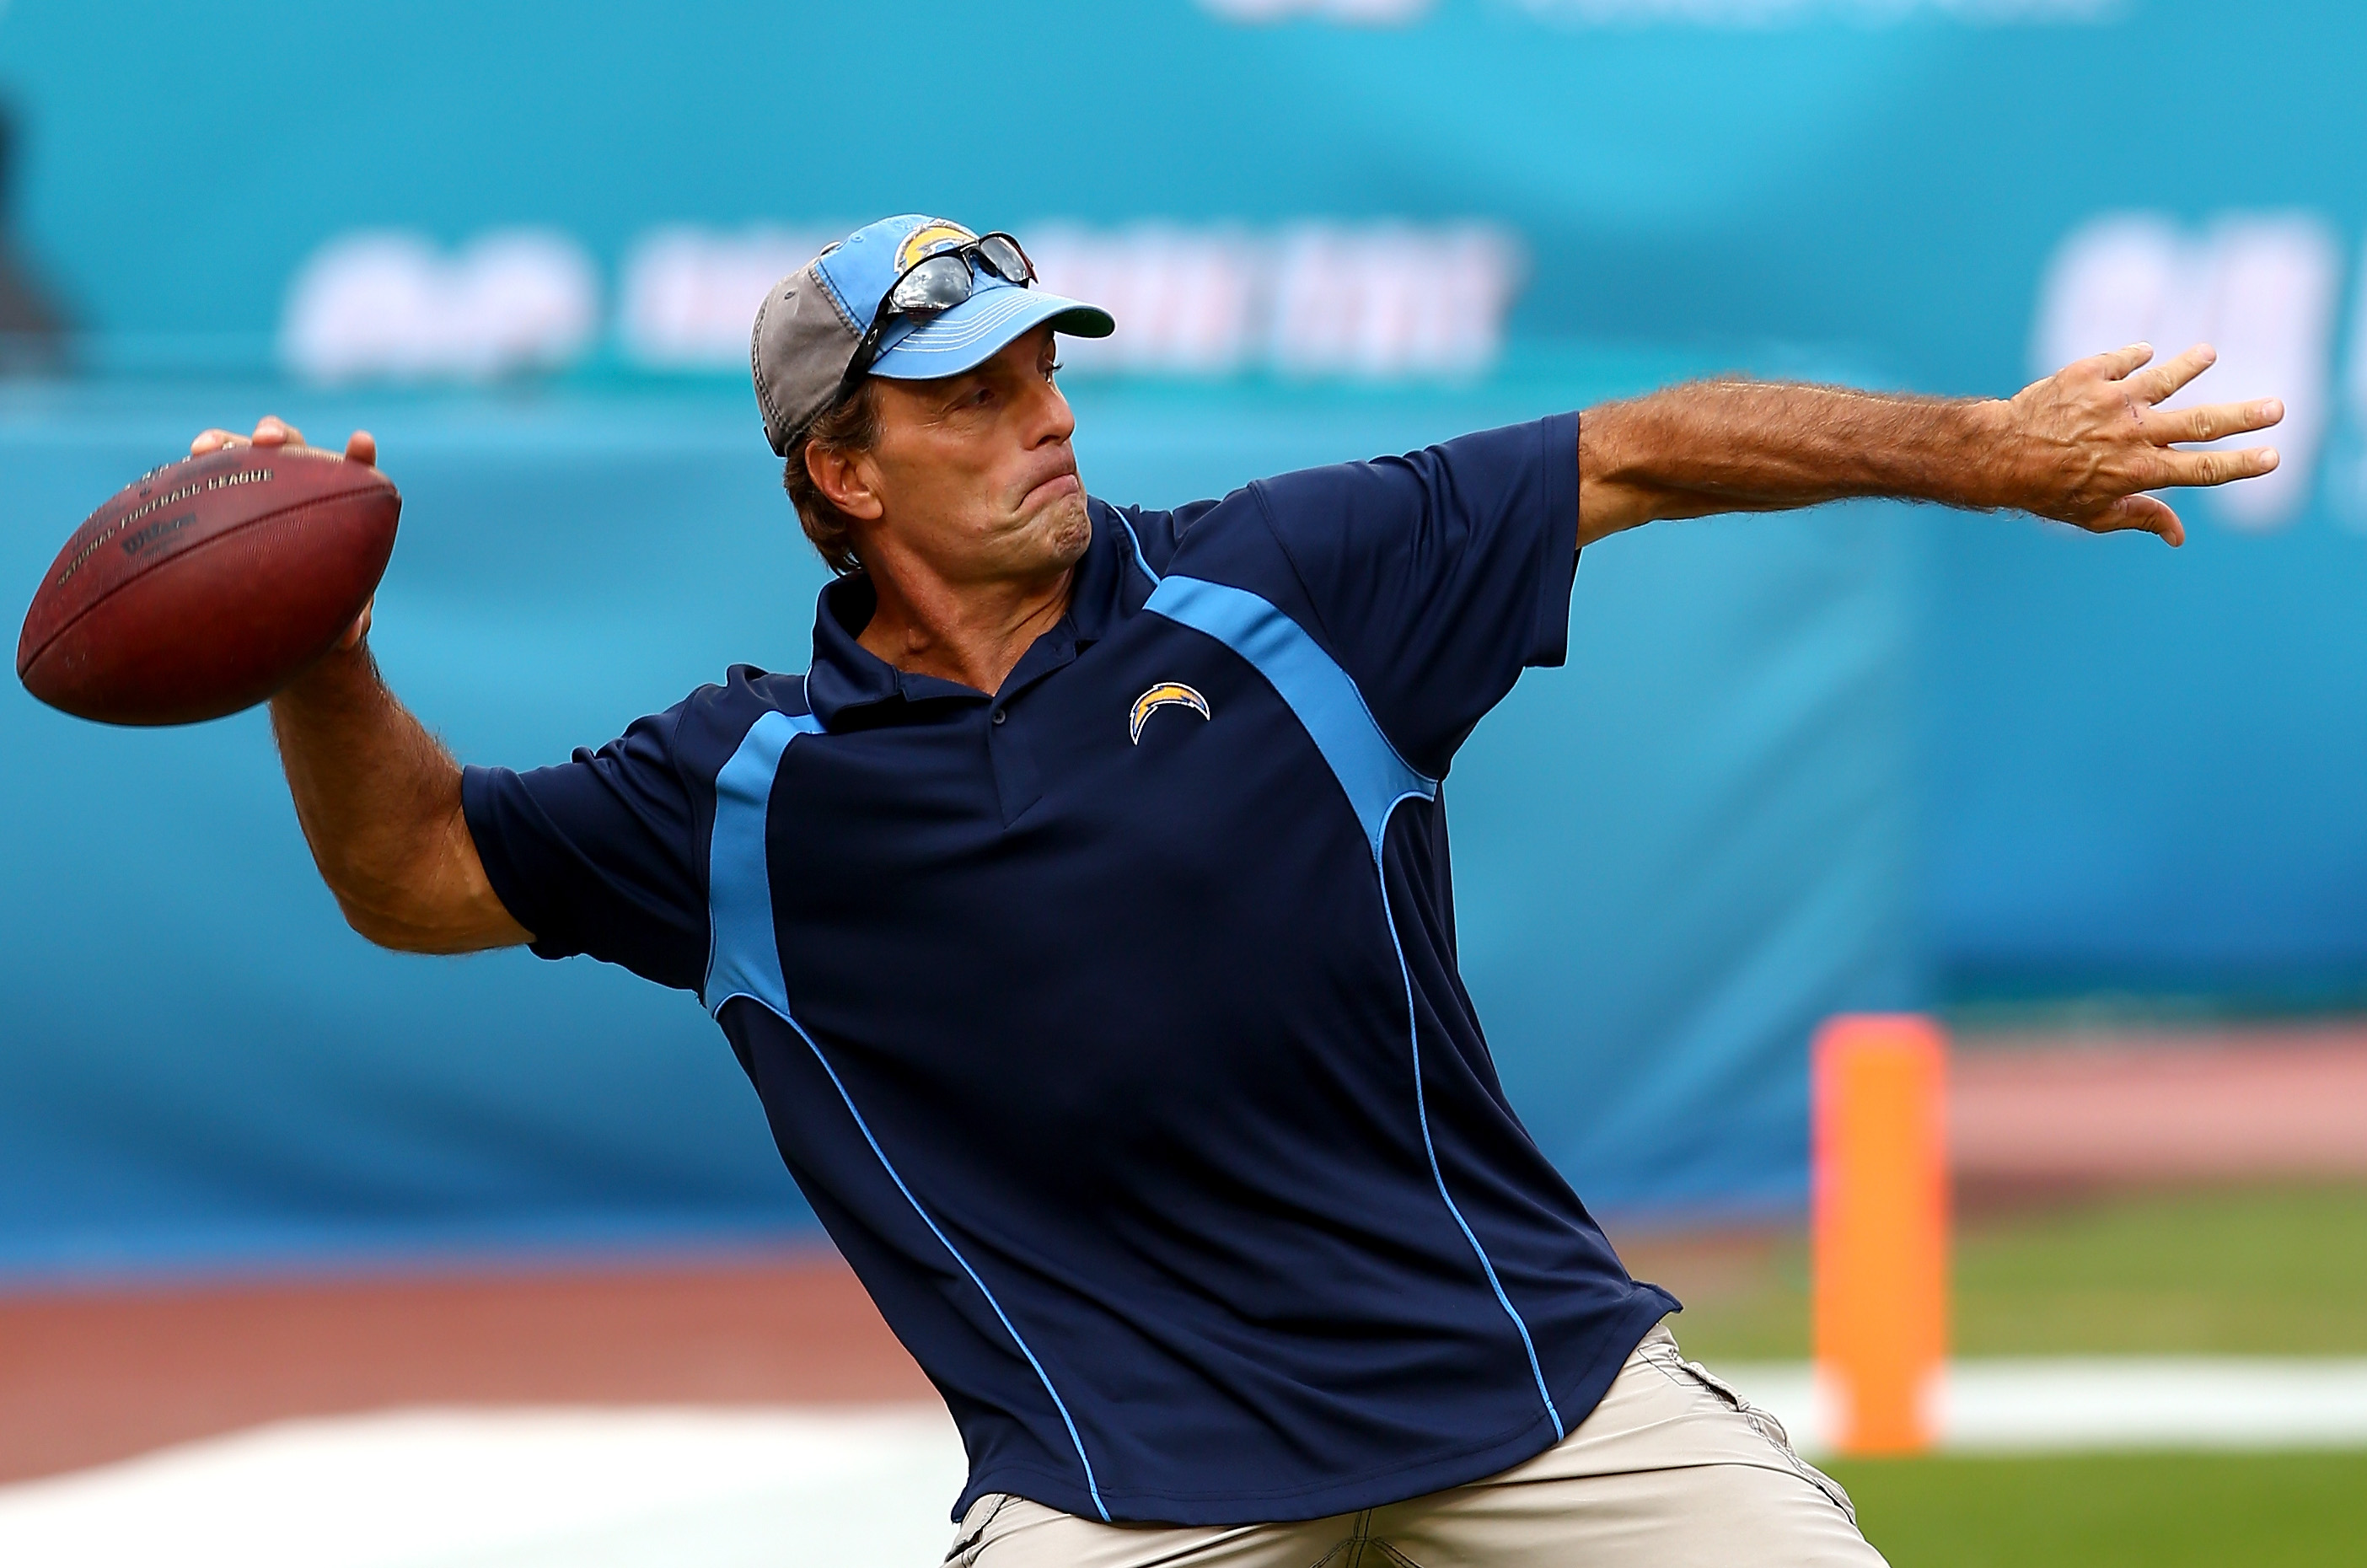 Former NFL quarterback, Doug Flutie, throws a ball during warmups before the game between the San Diego Chargers and Miami Dolphins at Sun Life Stadium on November 17, 2013 in Miami Gardens, Florida.